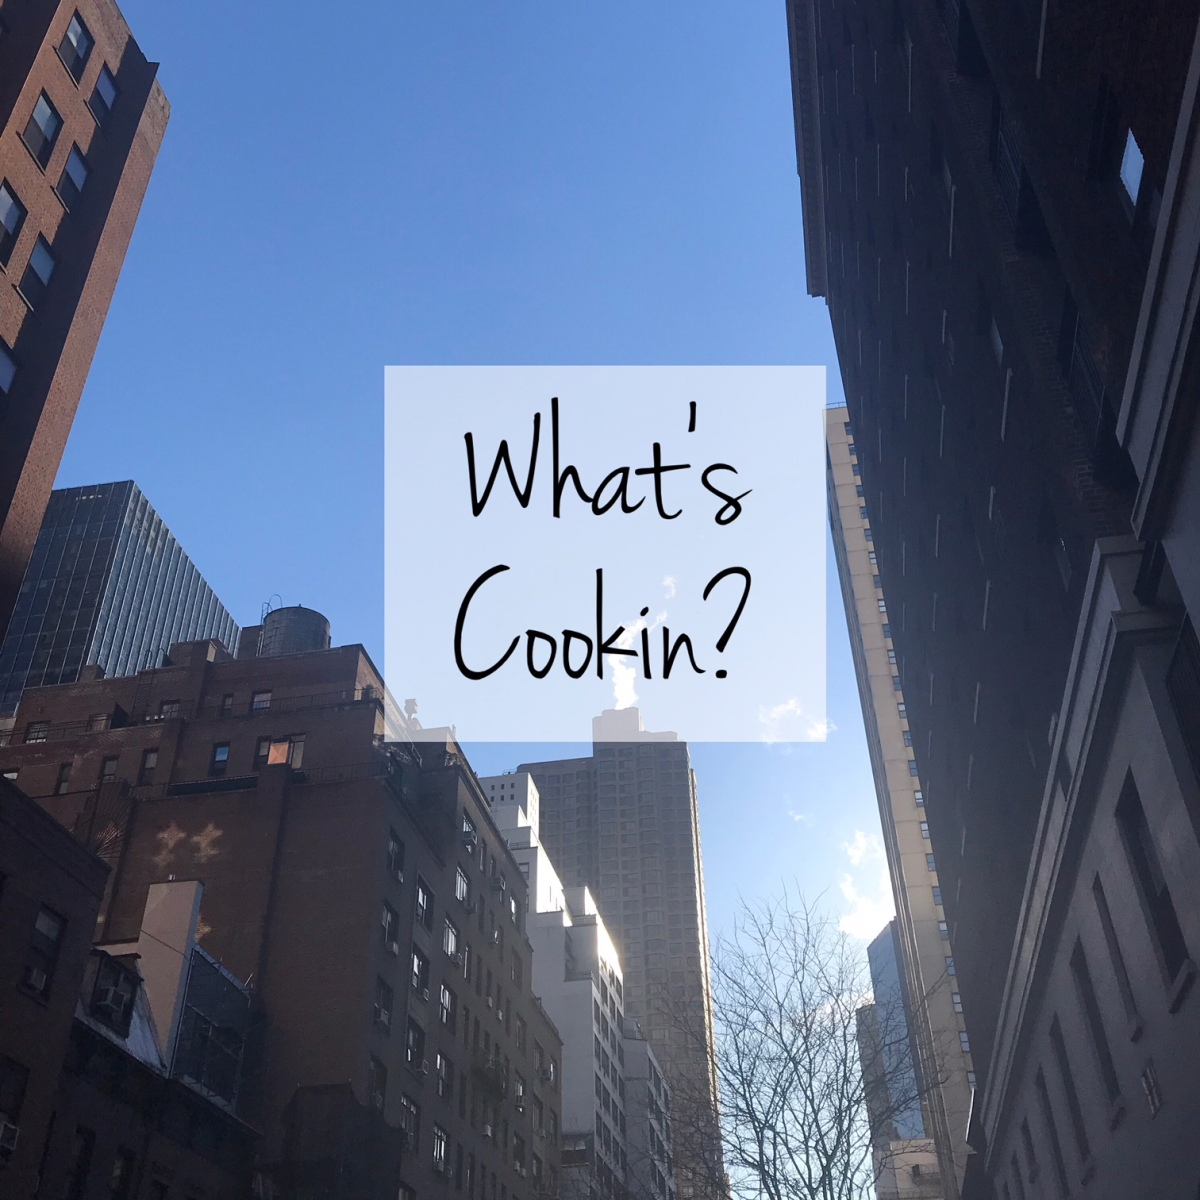 What's Cookin?